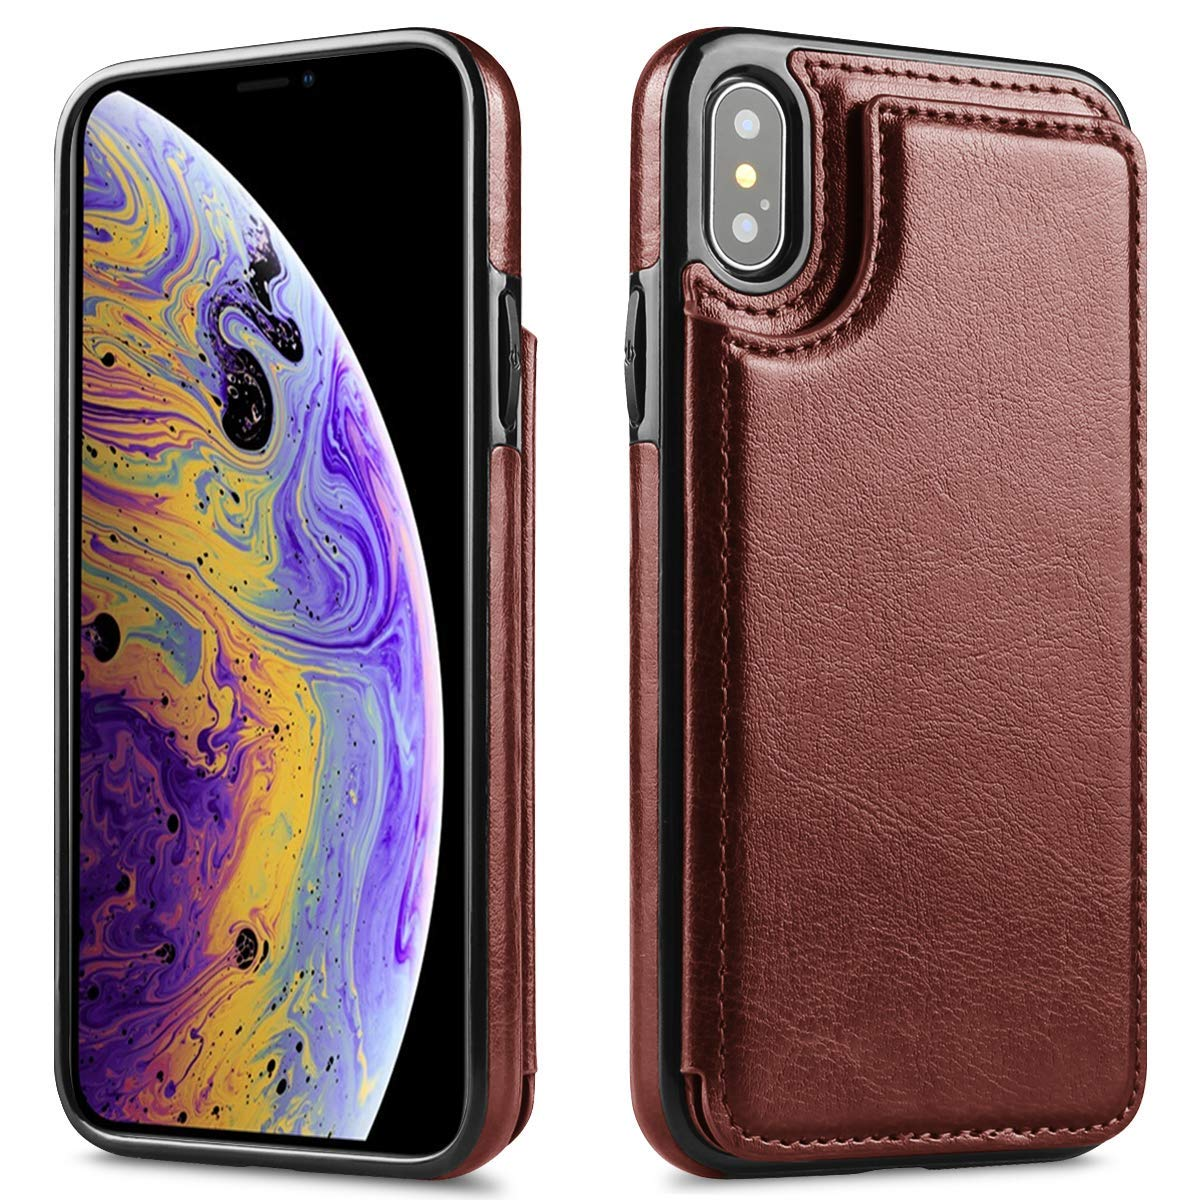 2018 New Design Case For iPhone XR,6.1 inch, Classic Series, Leather Case for iPhone XR Back Slim Cover